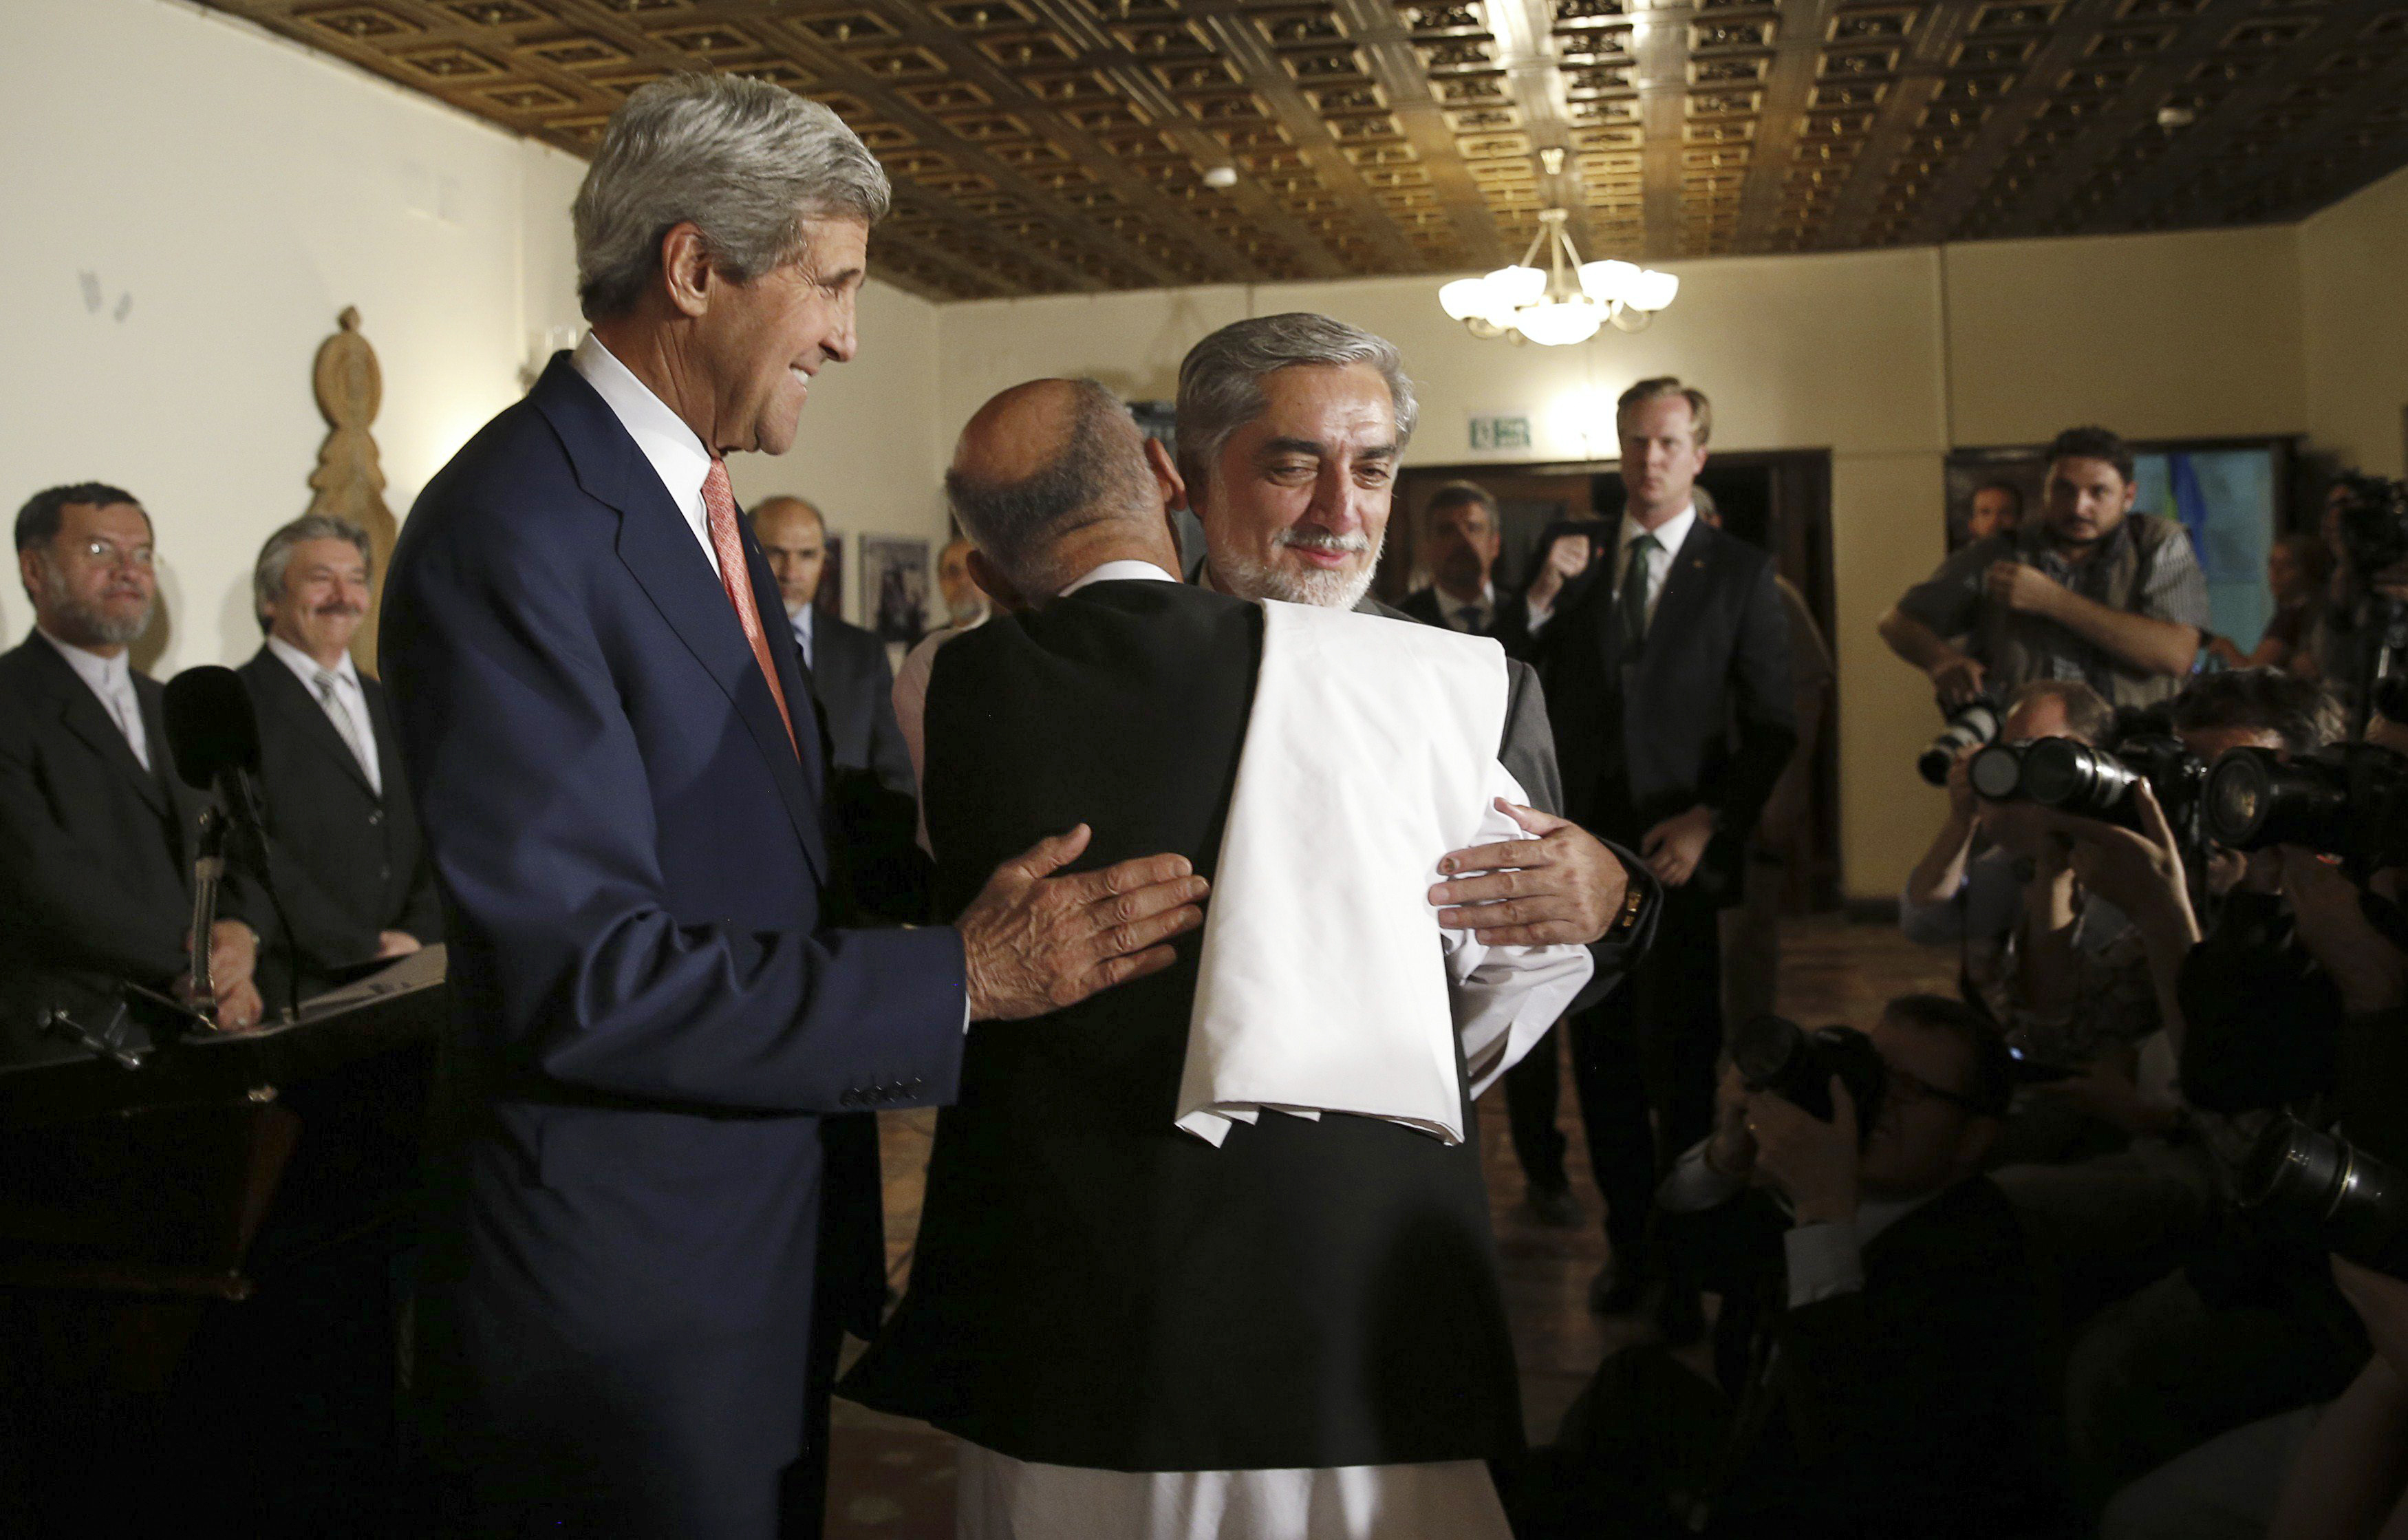 Presidential candidates Abdullah Abdullah, right, and Ashraf Ghani embrace at a news conference with Secretary of State John Kerry where a deal to audit ballots was announced, in Kabul, Afghanistan on July 12, 2014.